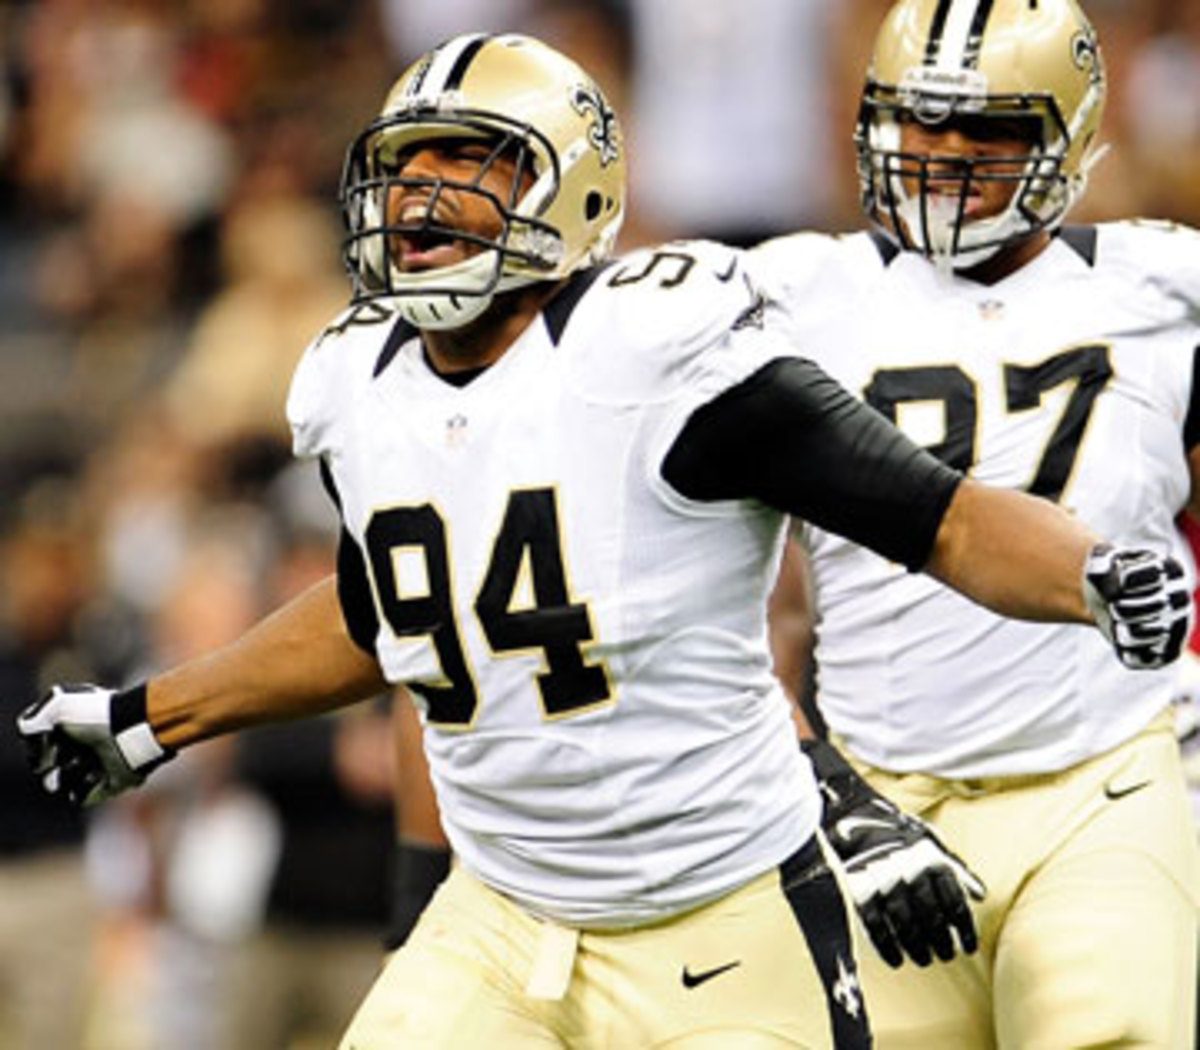 Cameron Jordan is tied for ninth in the NFL with three sacks. (Stacy Revere/Getty Images)